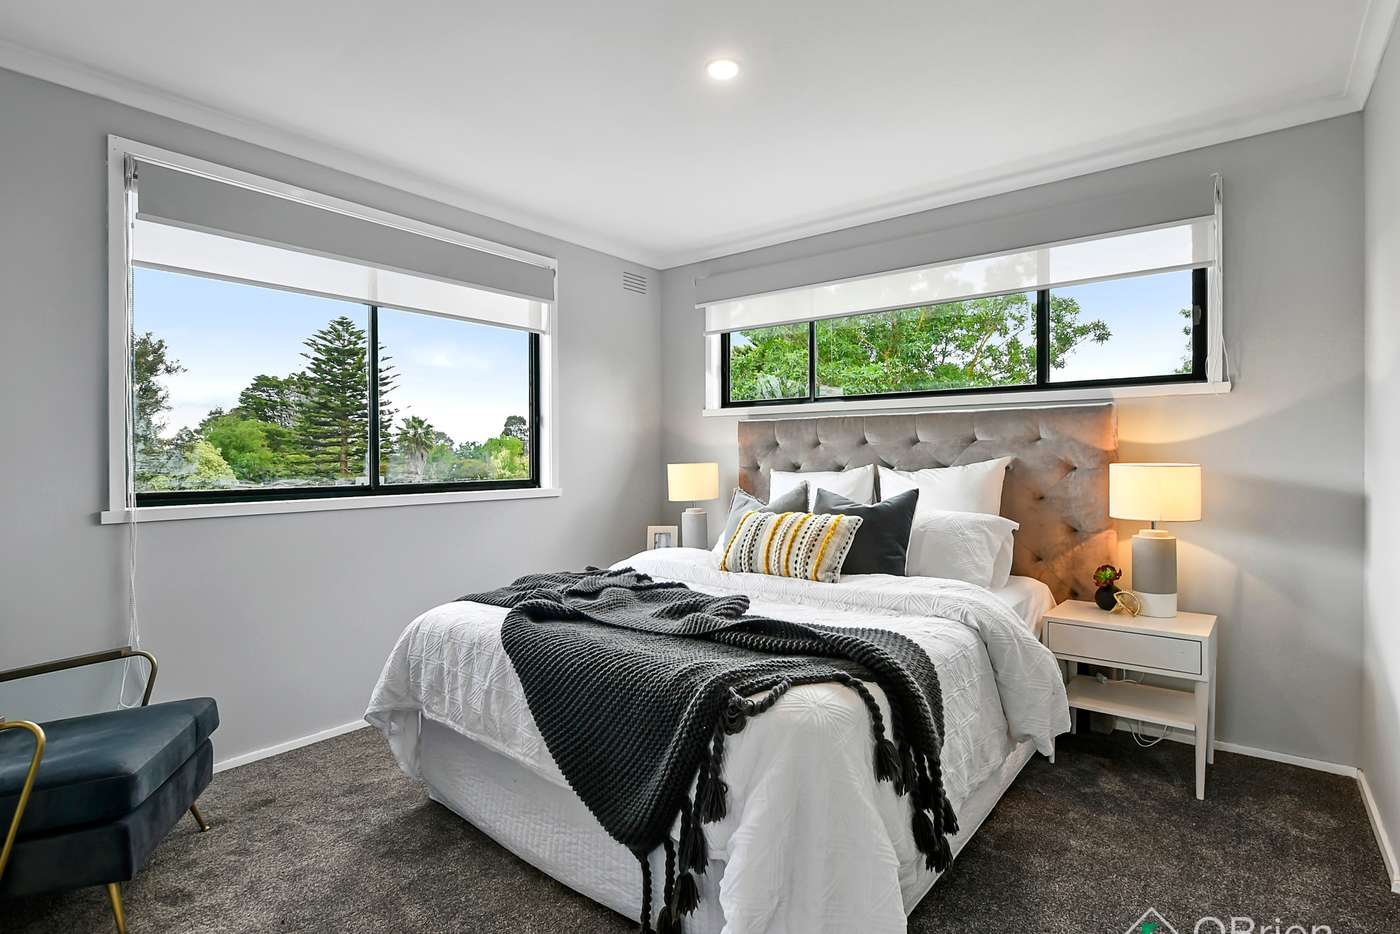 Sixth view of Homely house listing, 6 Merlin Court, Frankston VIC 3199